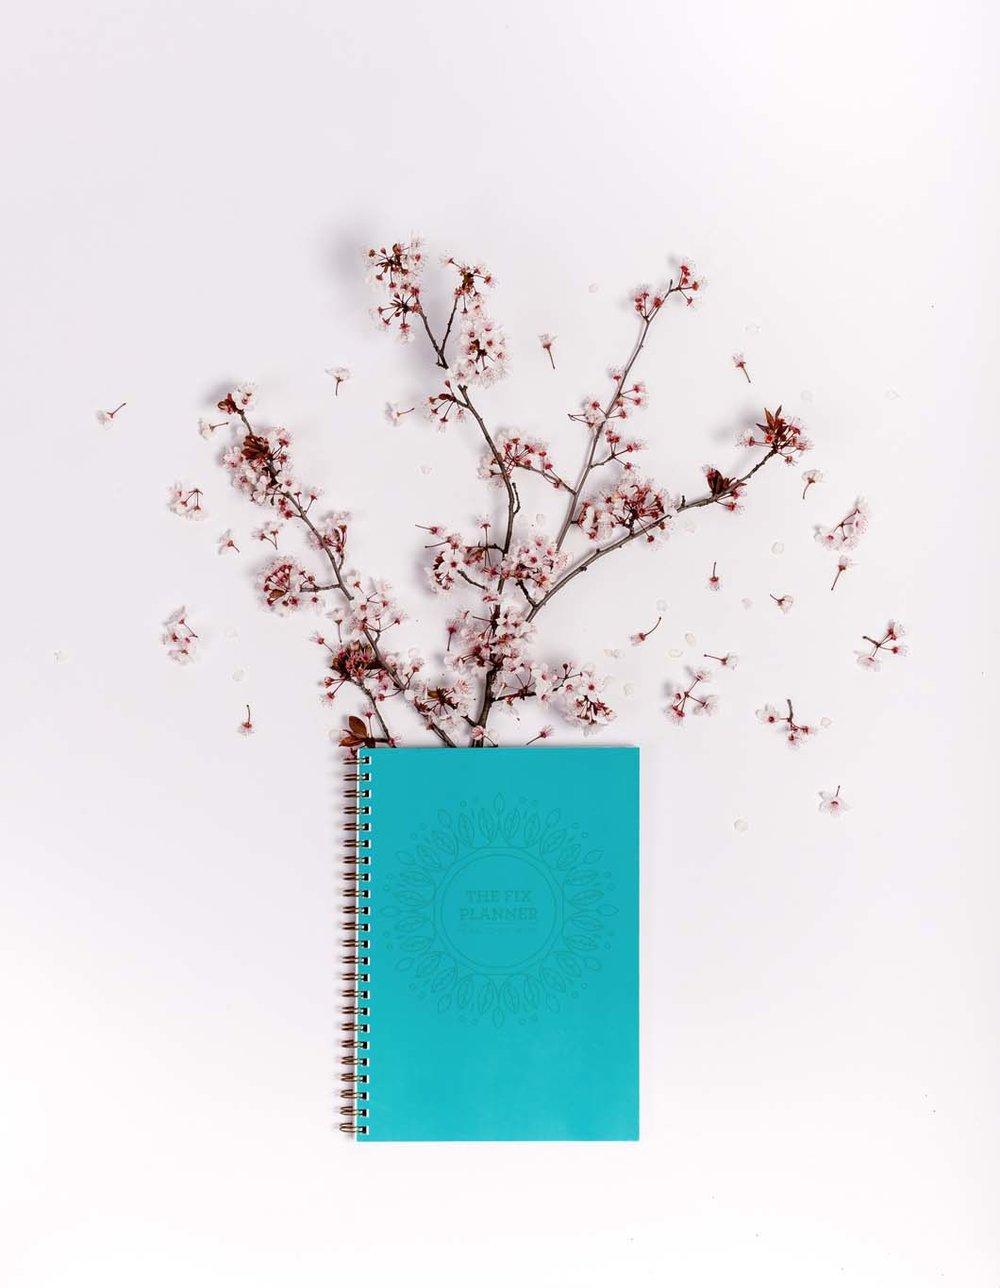 Spiral notepad with cherry blossom branch